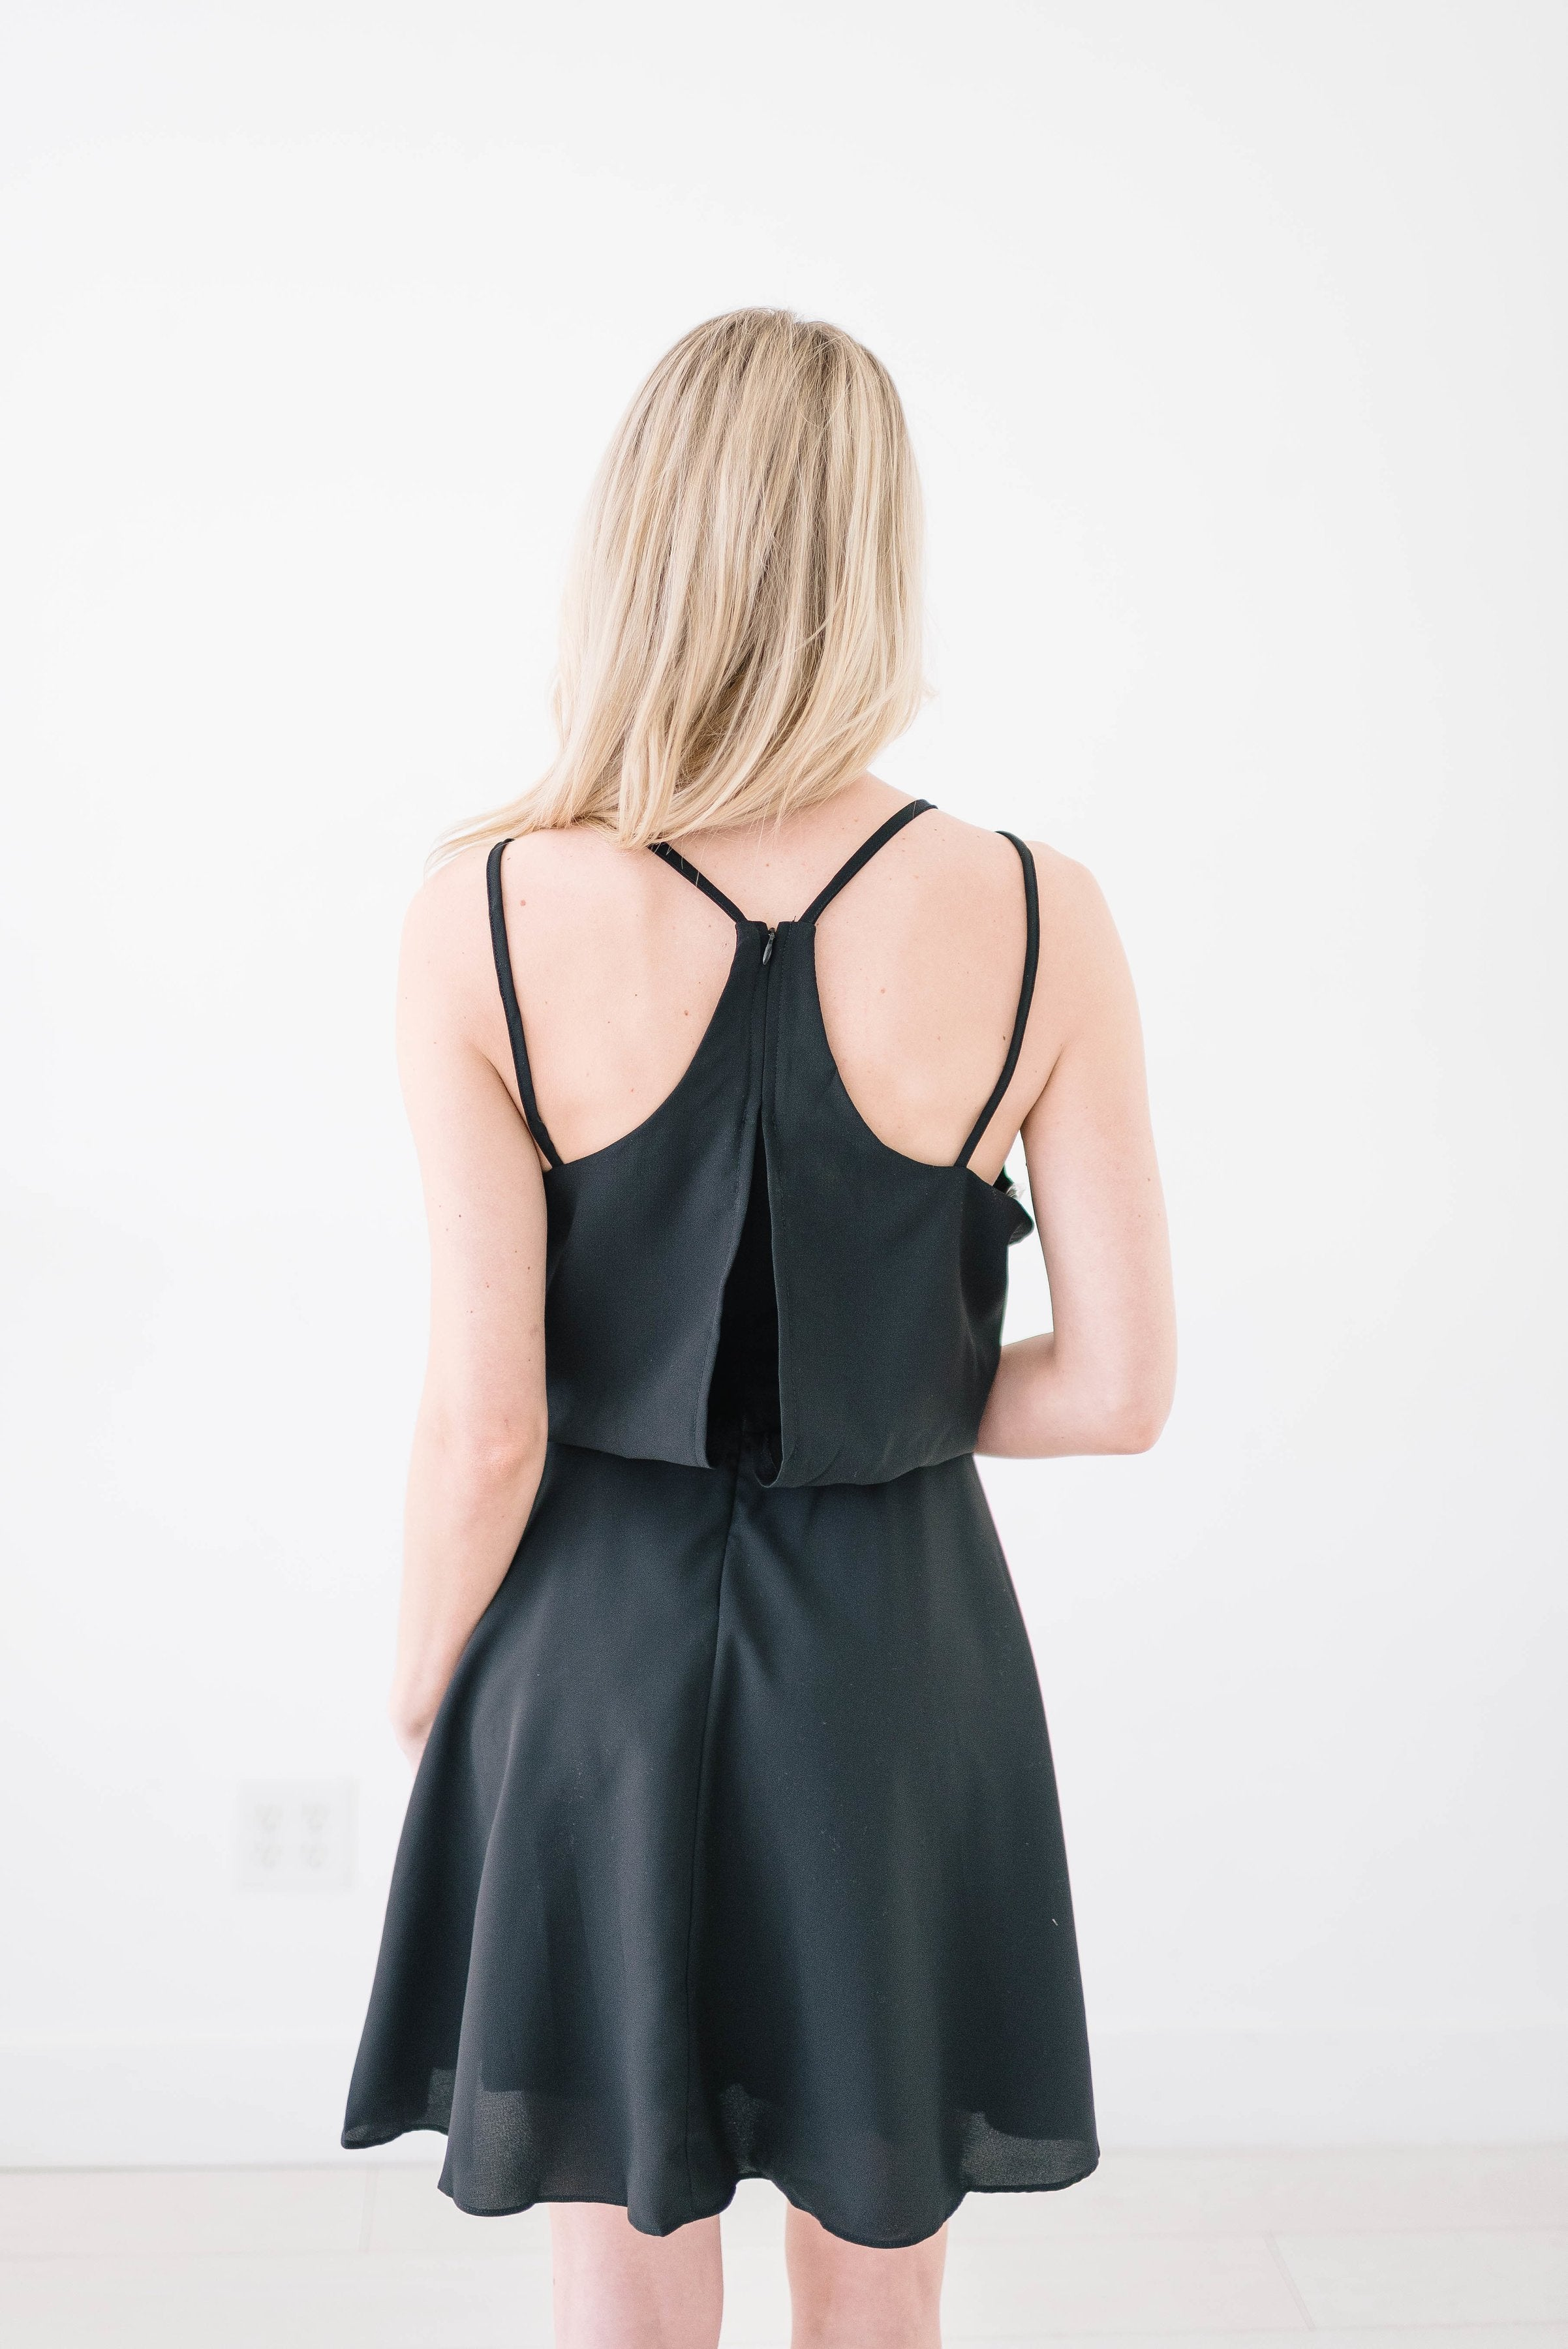 Up For Anything Black Dress